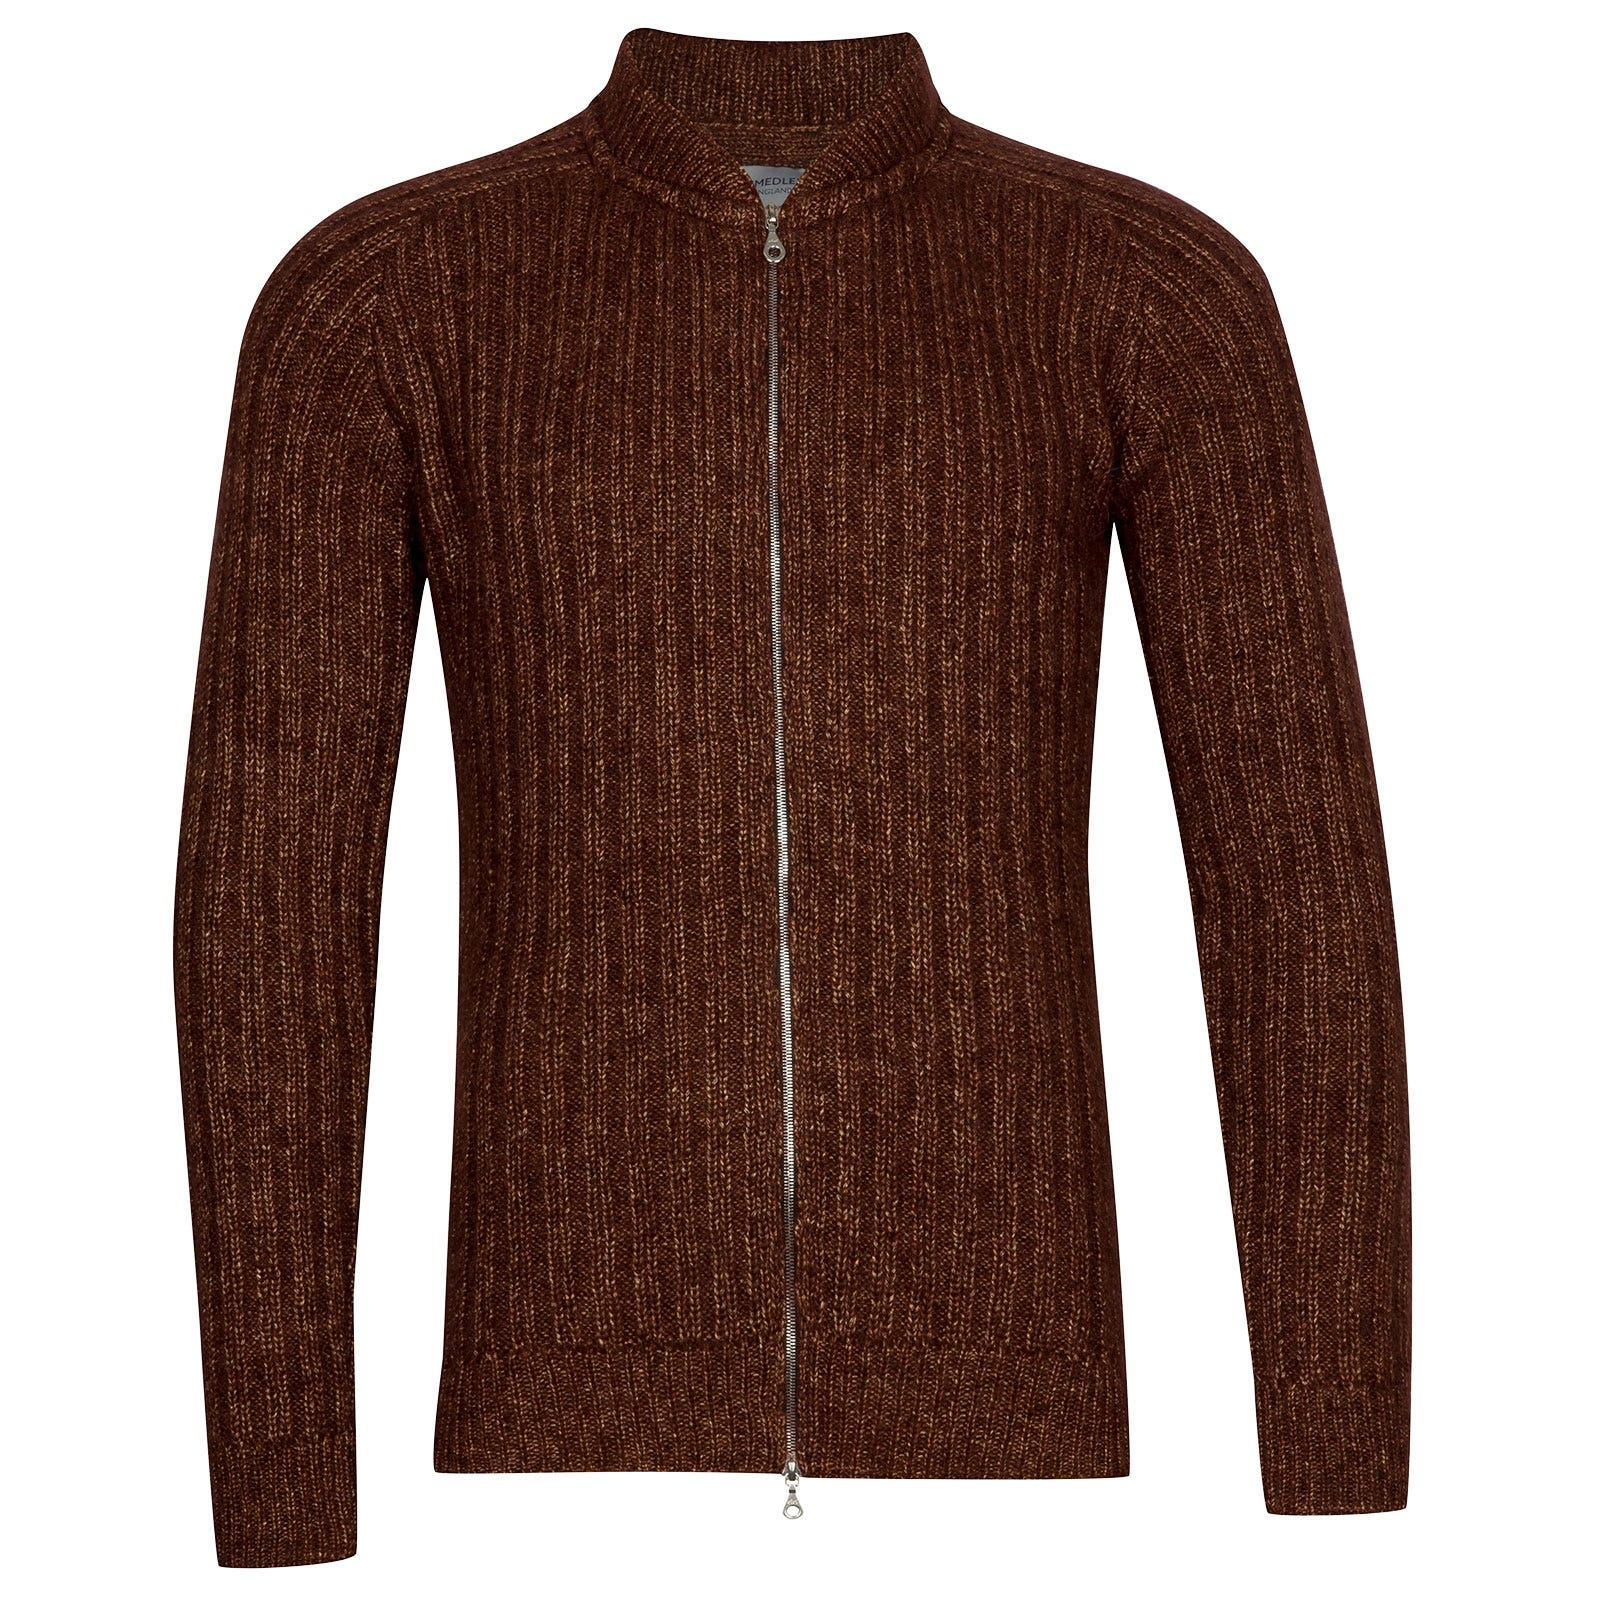 John Smedley Power Viscose Blend Jacket In Bronze-M